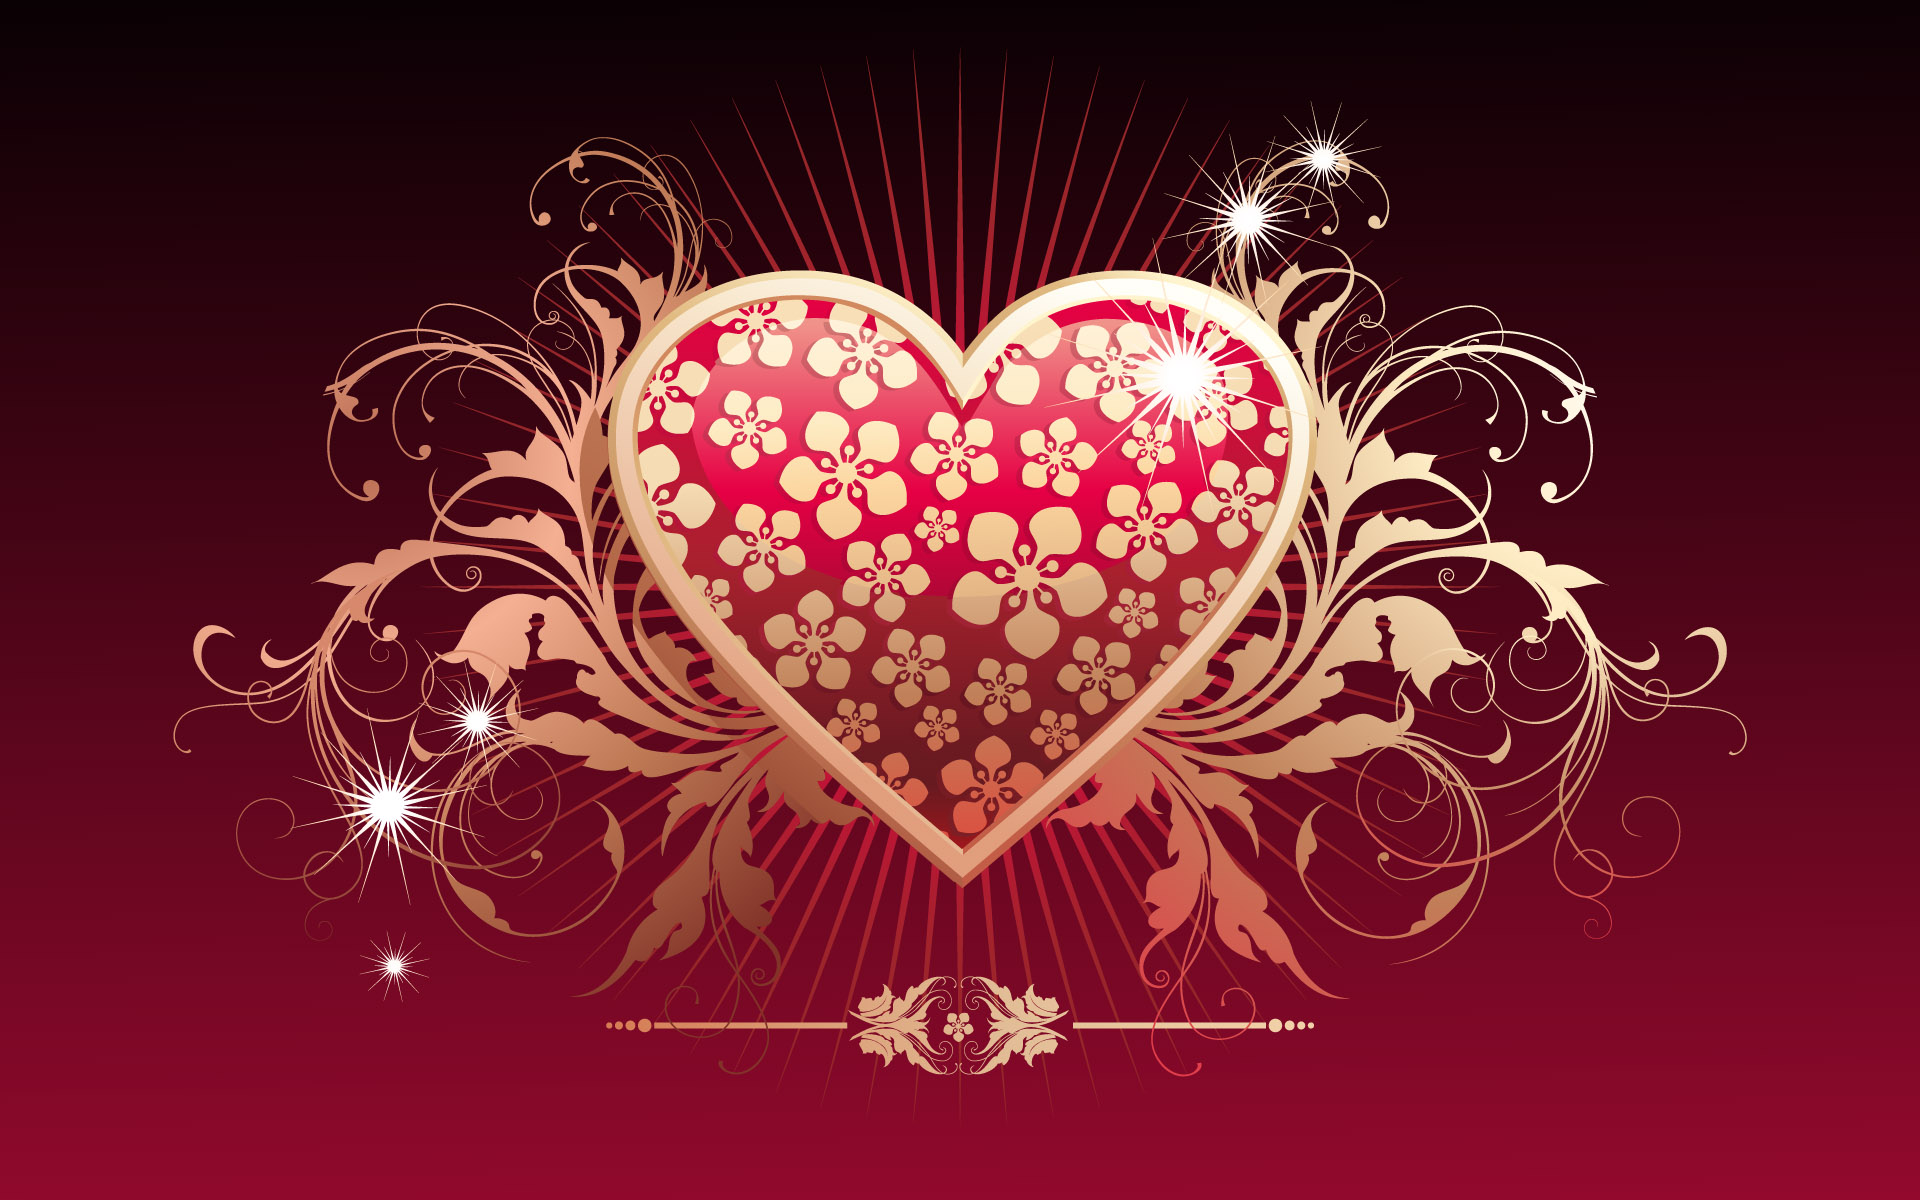 Hearts Wallpaper - Download Pictures Of Love Hearts - HD Wallpaper